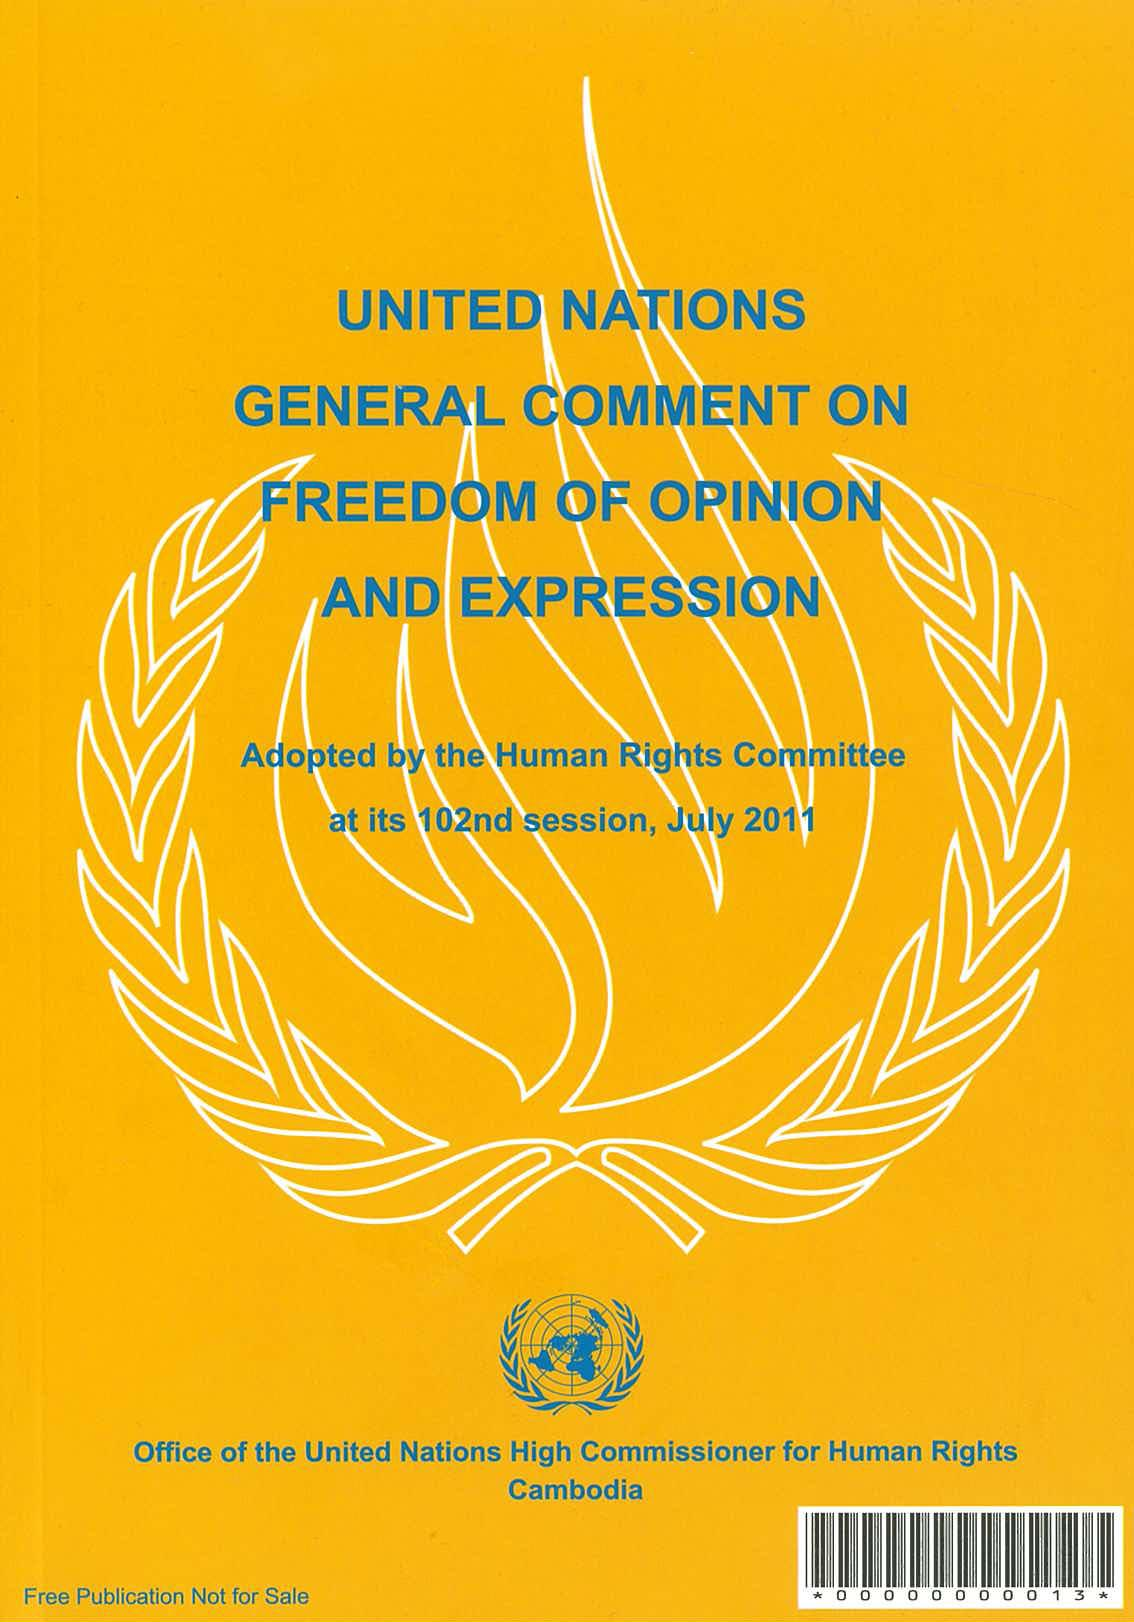 General Comment No 34 of the Human Rights Committee, on Freedom of Opinion and Expression